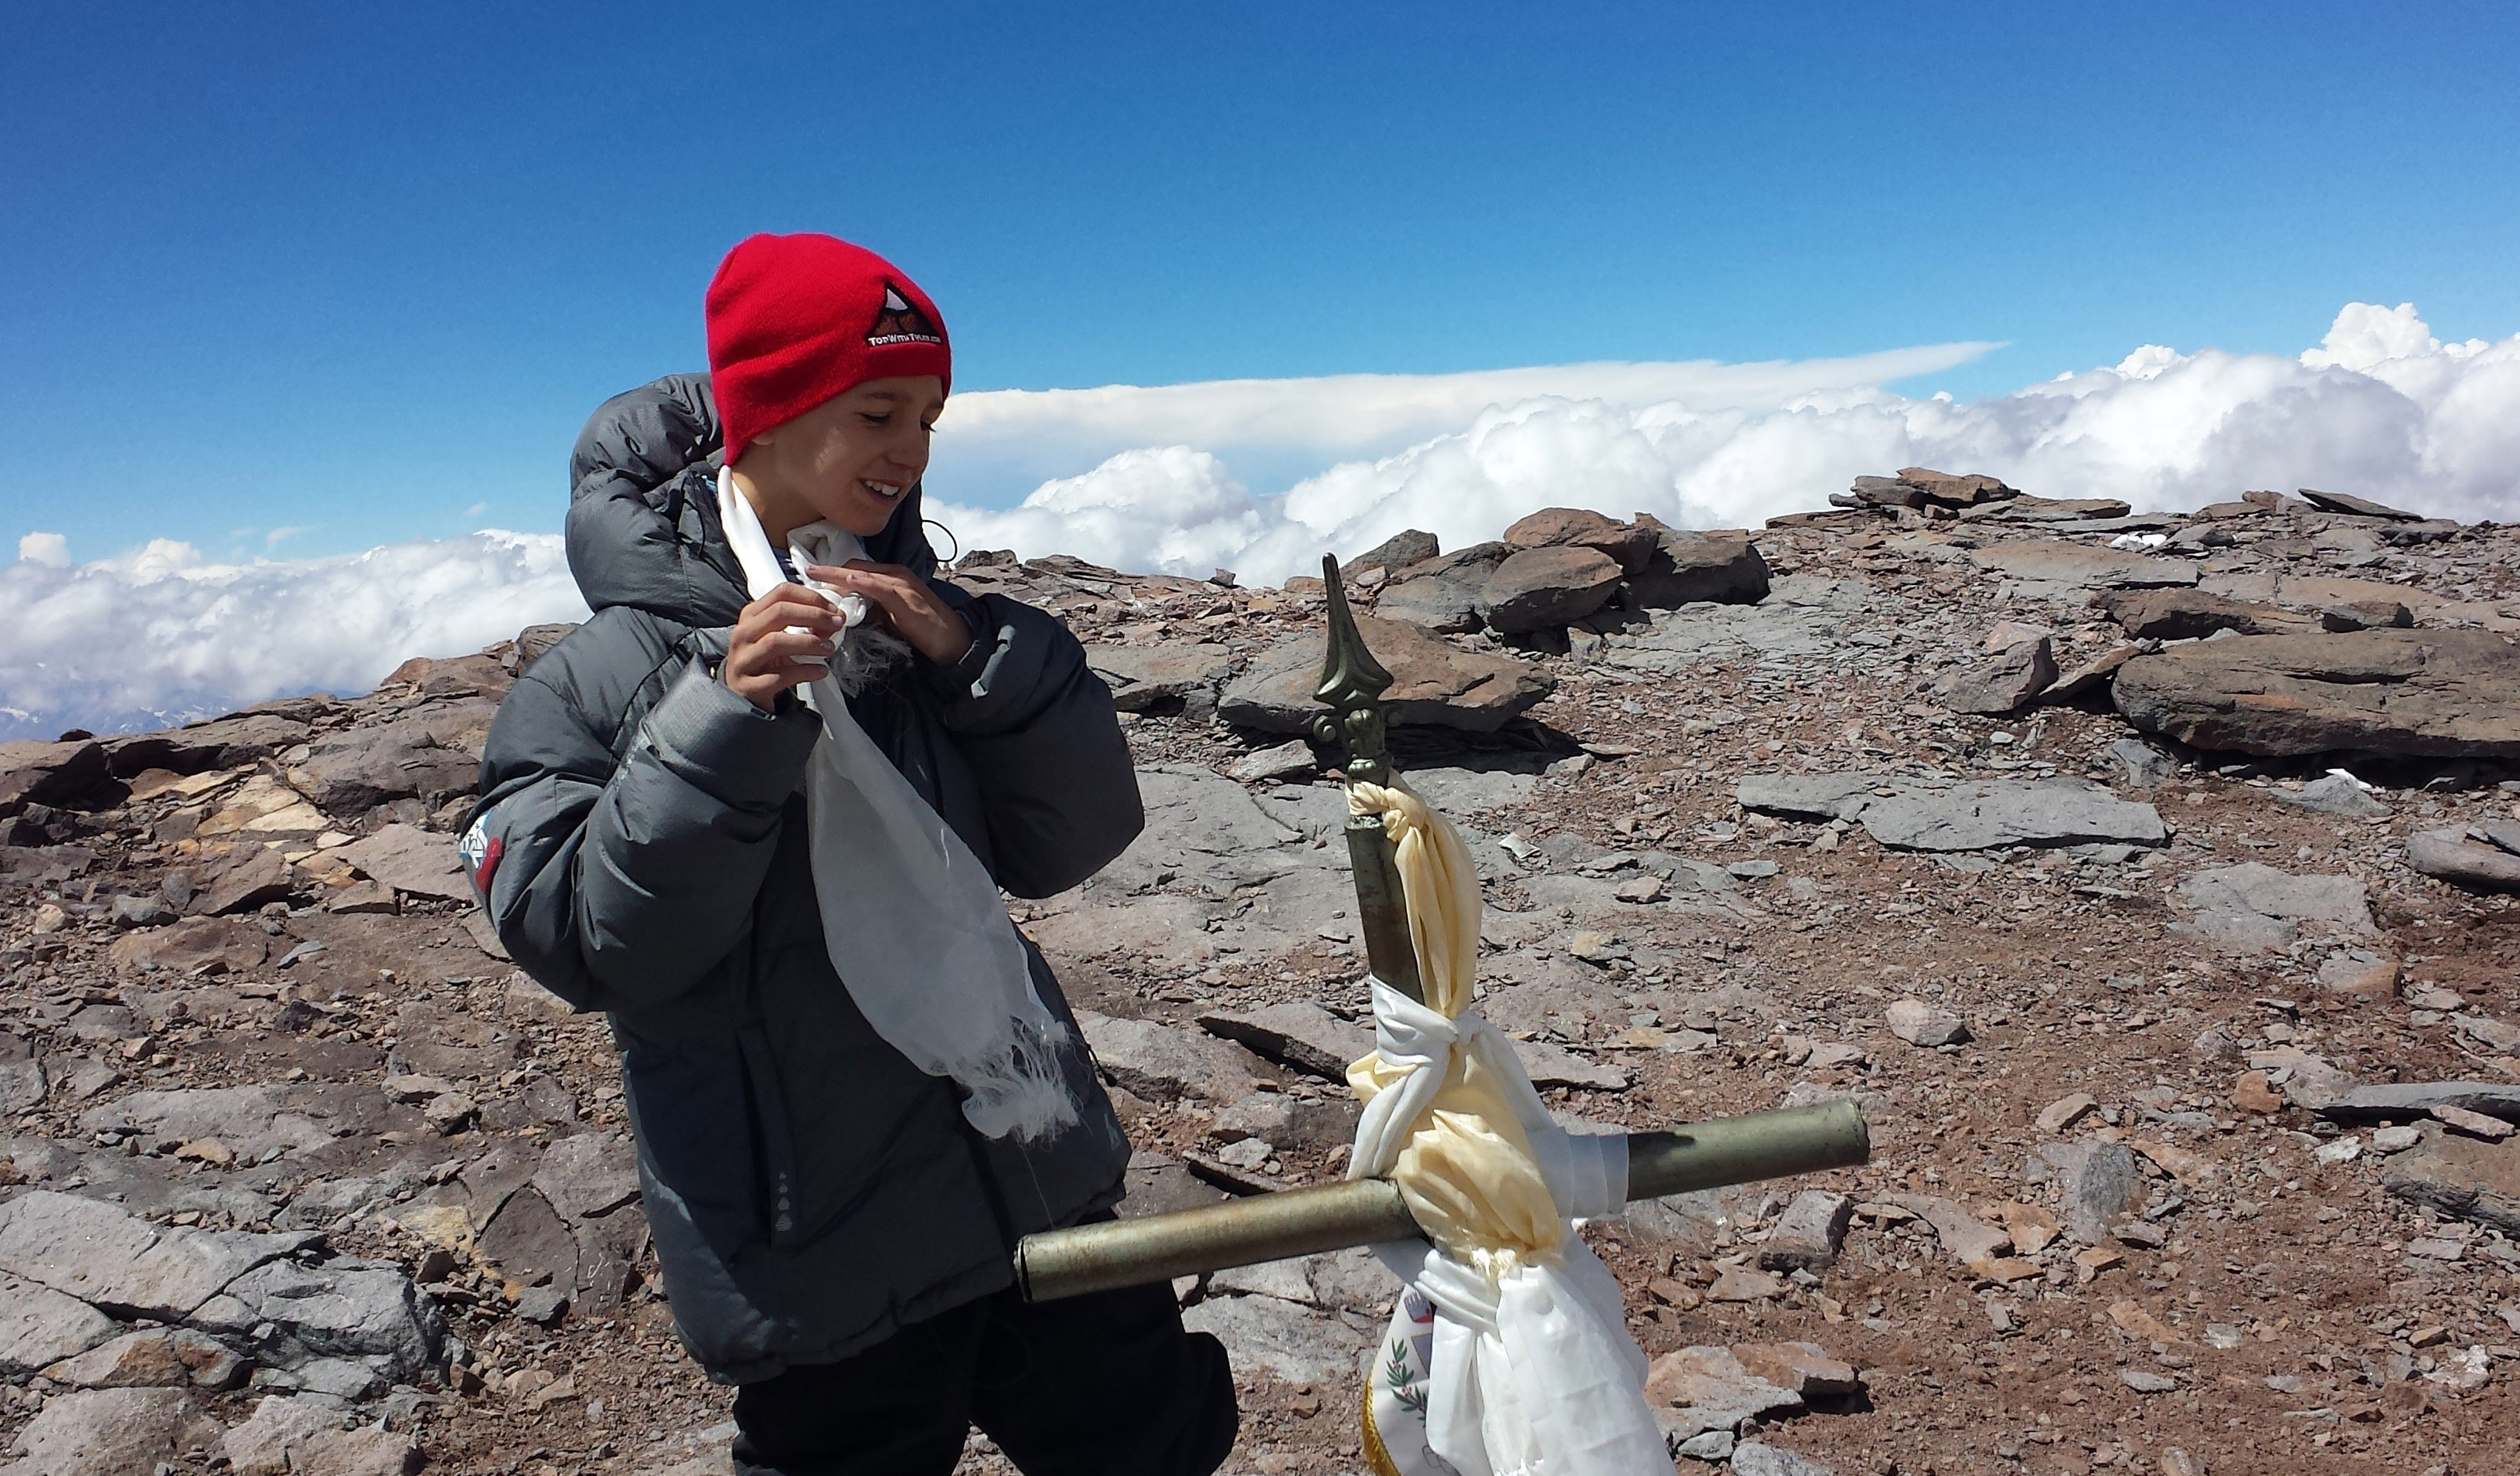 This Dec. 24, 2013 photo released by Lhawang Dhondup shows Tyler Armstrong, from Southern California, standing by a cross on the summit of Aconcagua Mountain in Argentina. The 9-year-old boy has become the youngest person in recorded history to reach the summit of Argentina's Aconcagua mountain, the tallest peak in the Western and Southern hemispheres. (AP Photo/Lhawang Dhondup)